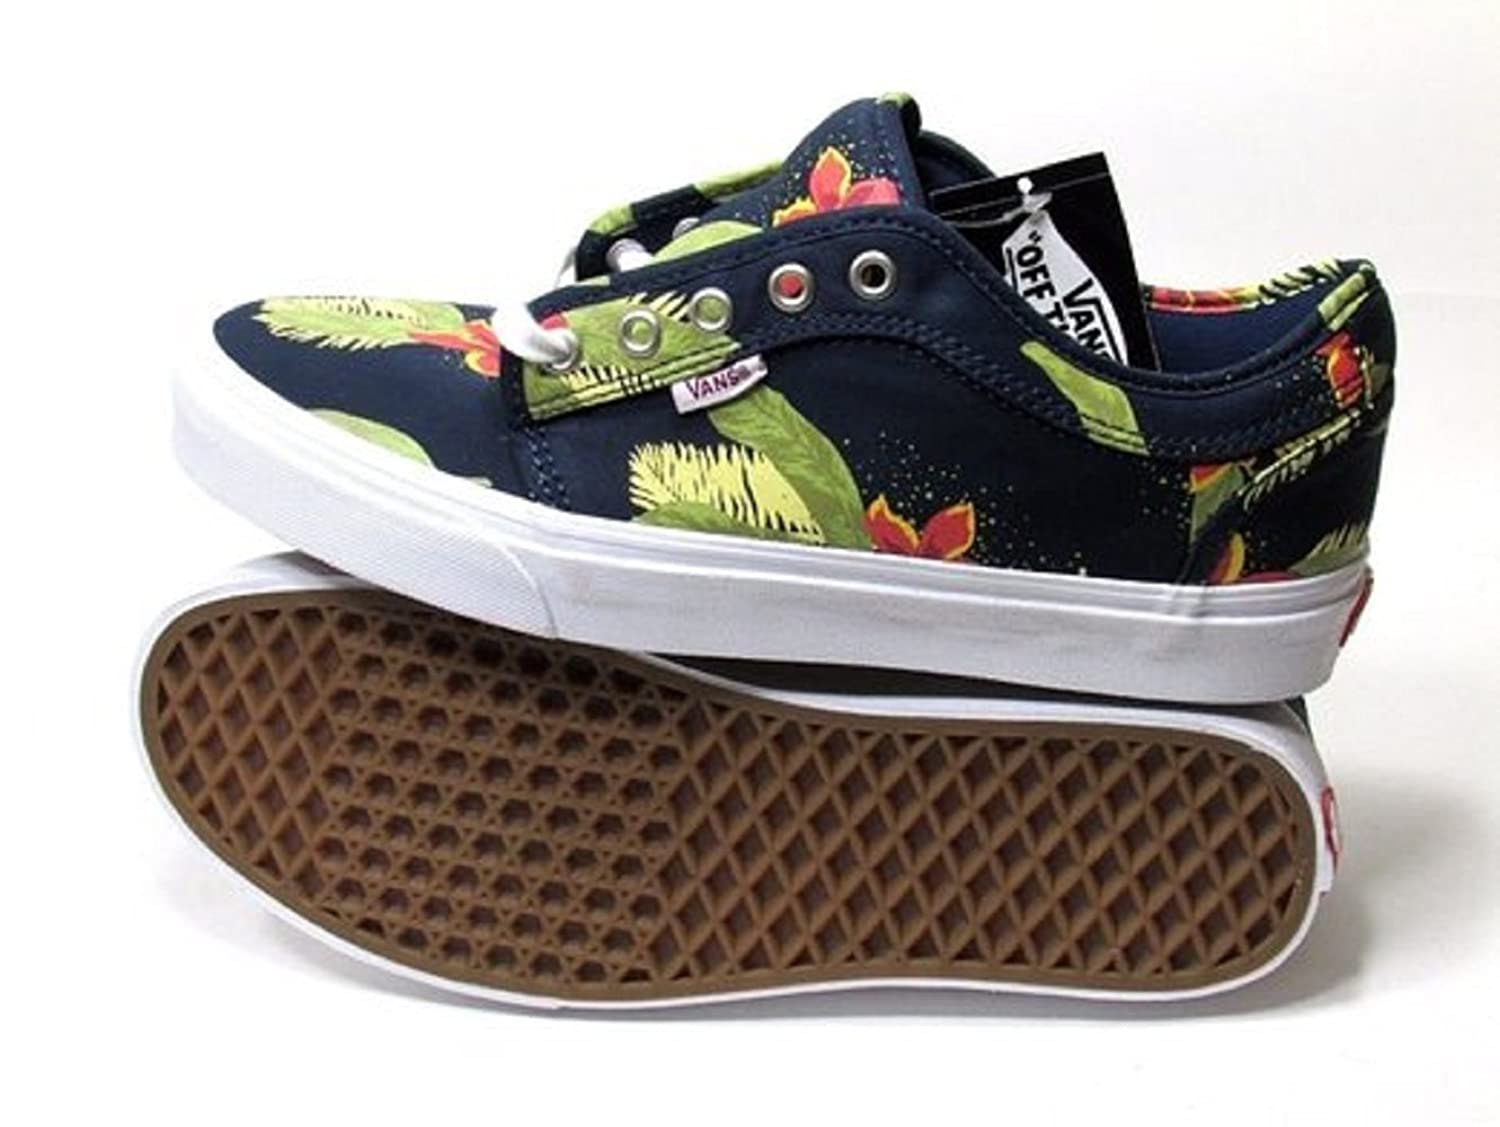 Vans Chukka Low Aloha Navy Blue/Green Sneakers Mens (13 Mens) durable  service